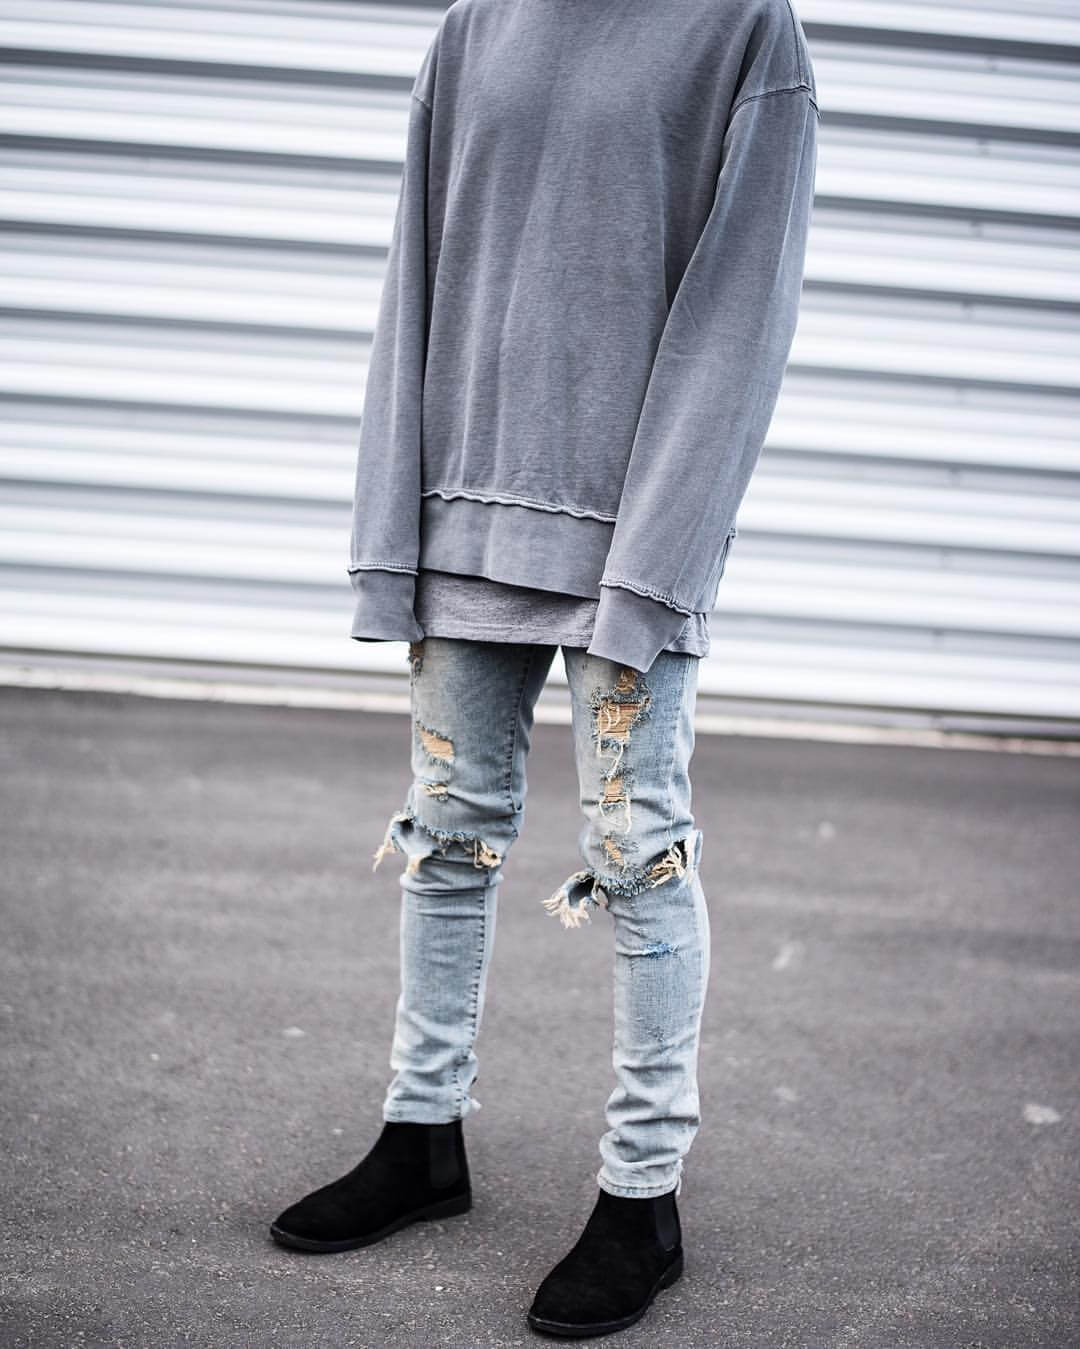 distressed-jeans-oversized-sweater-chelsea-boots